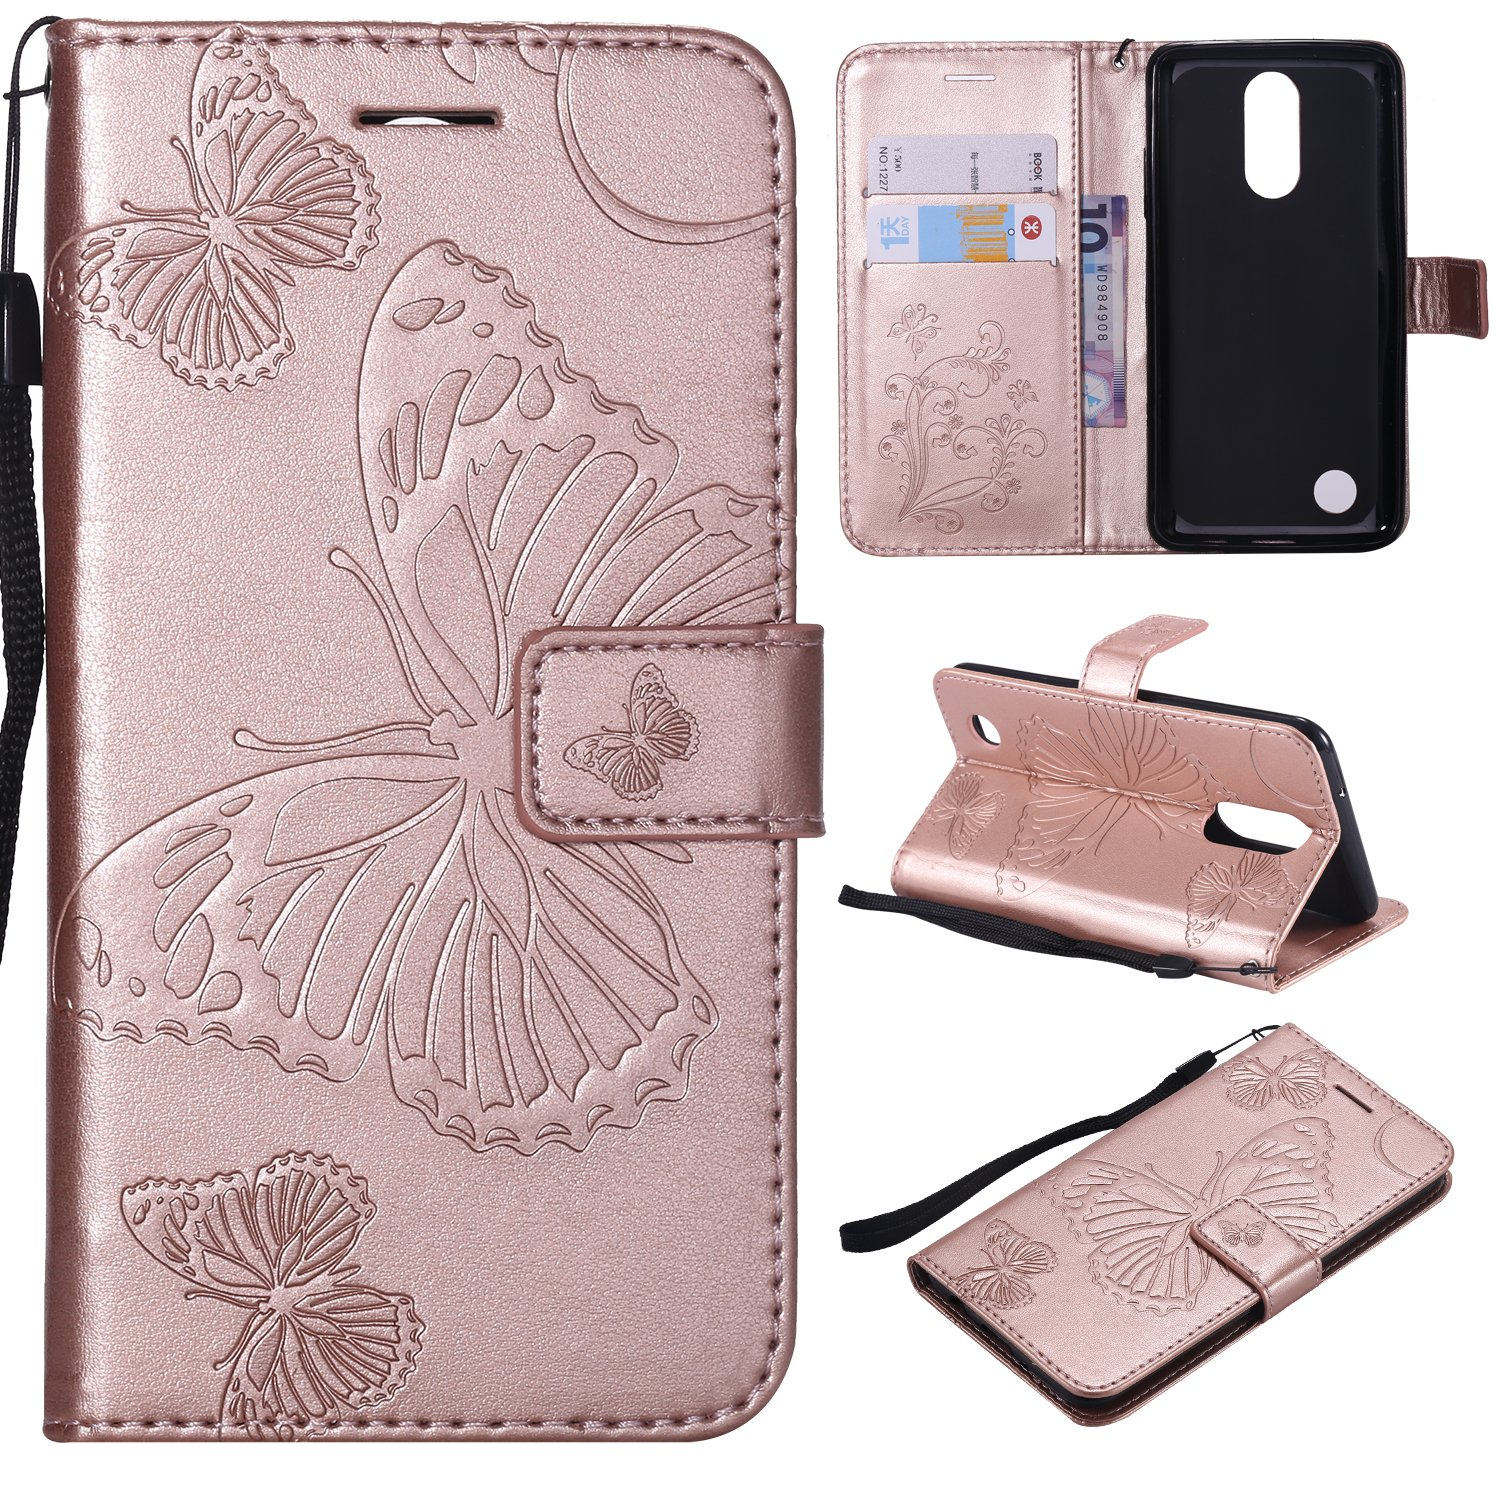 Tznzxm LG Aristo/LG Phoenix 3 /LG Fortune/LG Risio 2 / LG Rebel 2 LTE Case Embossed Butterfly Magnetic Closure Wallet Protective Flip Kickstand Credit Card Slots Wrist for LG K8 2017 Rose Gold